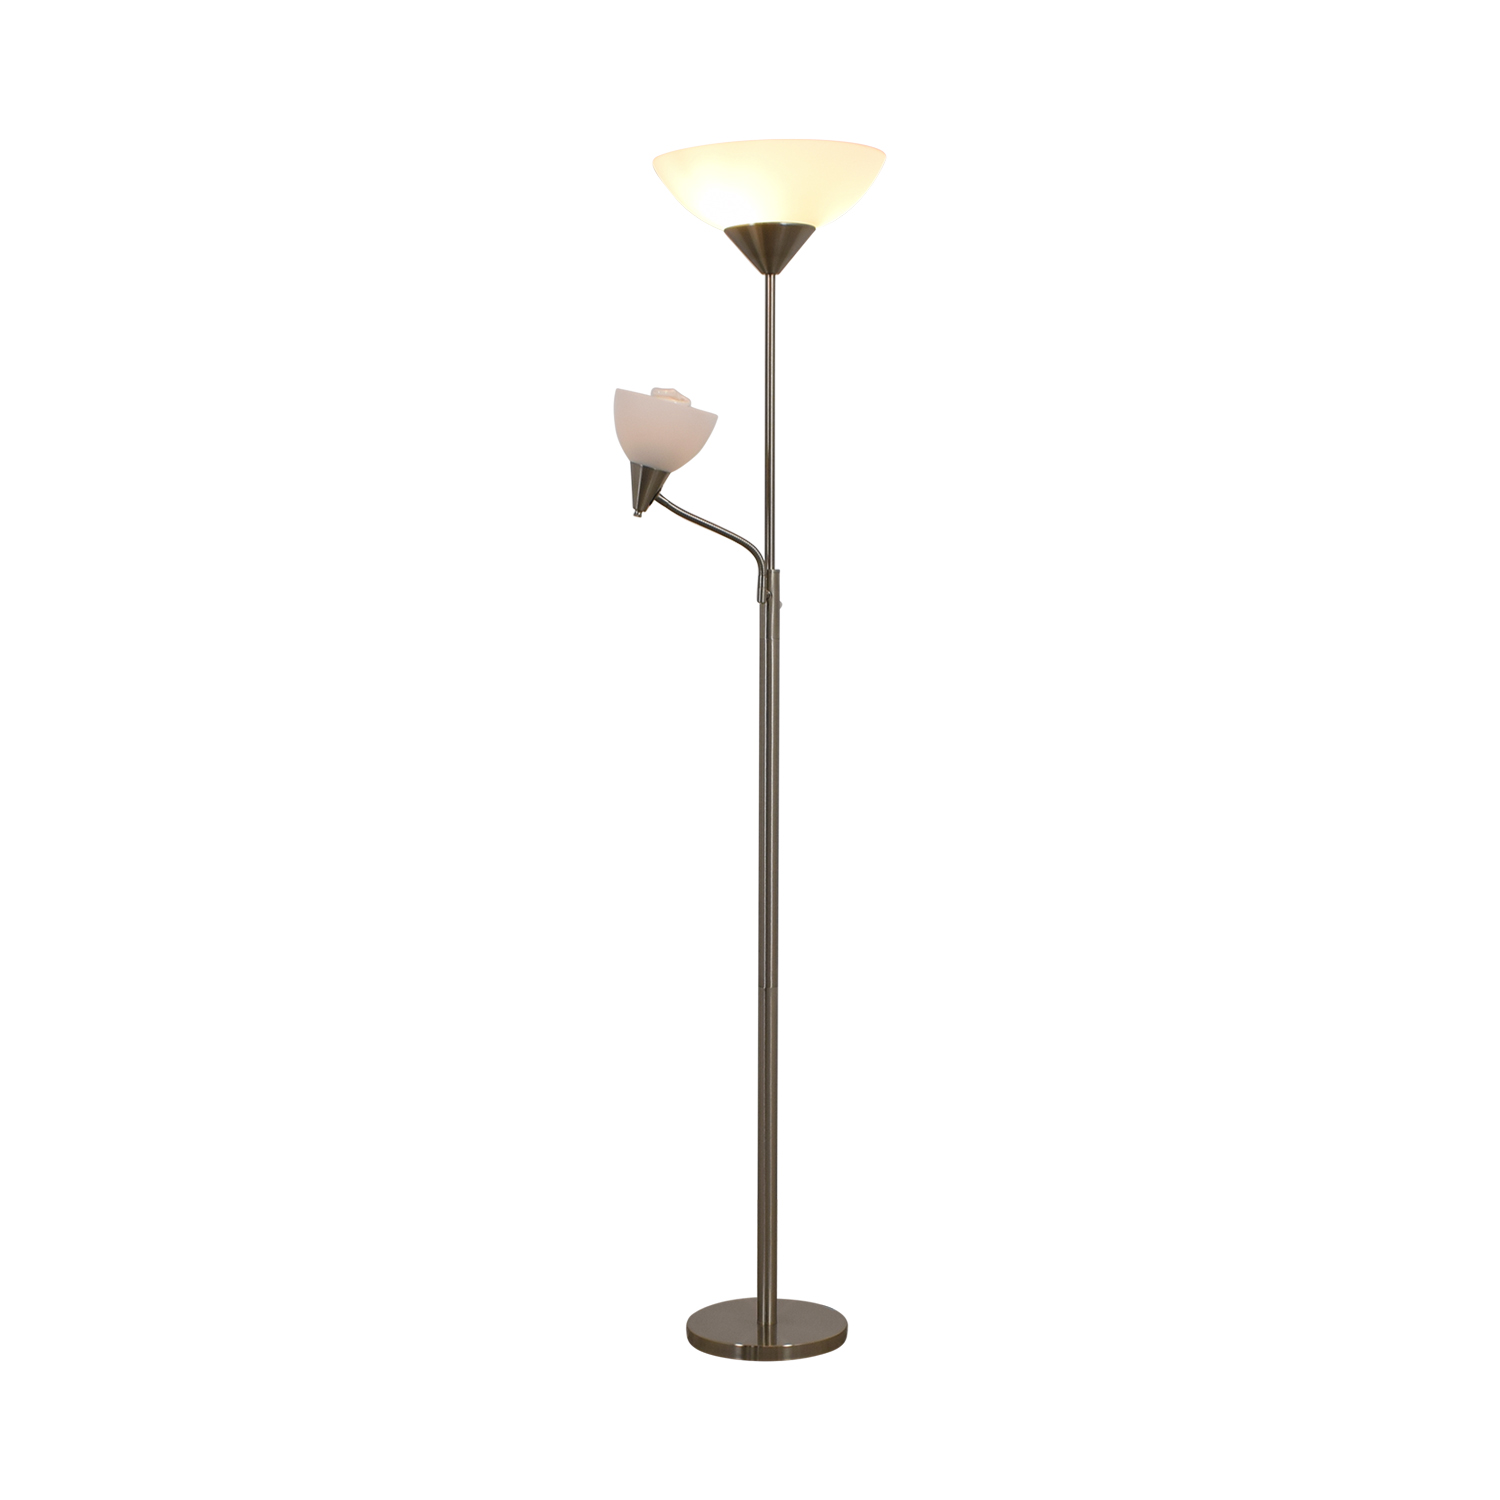 Bed Bath and Beyond Bed Bath and Beyond Silver Floor Lamp Lamps